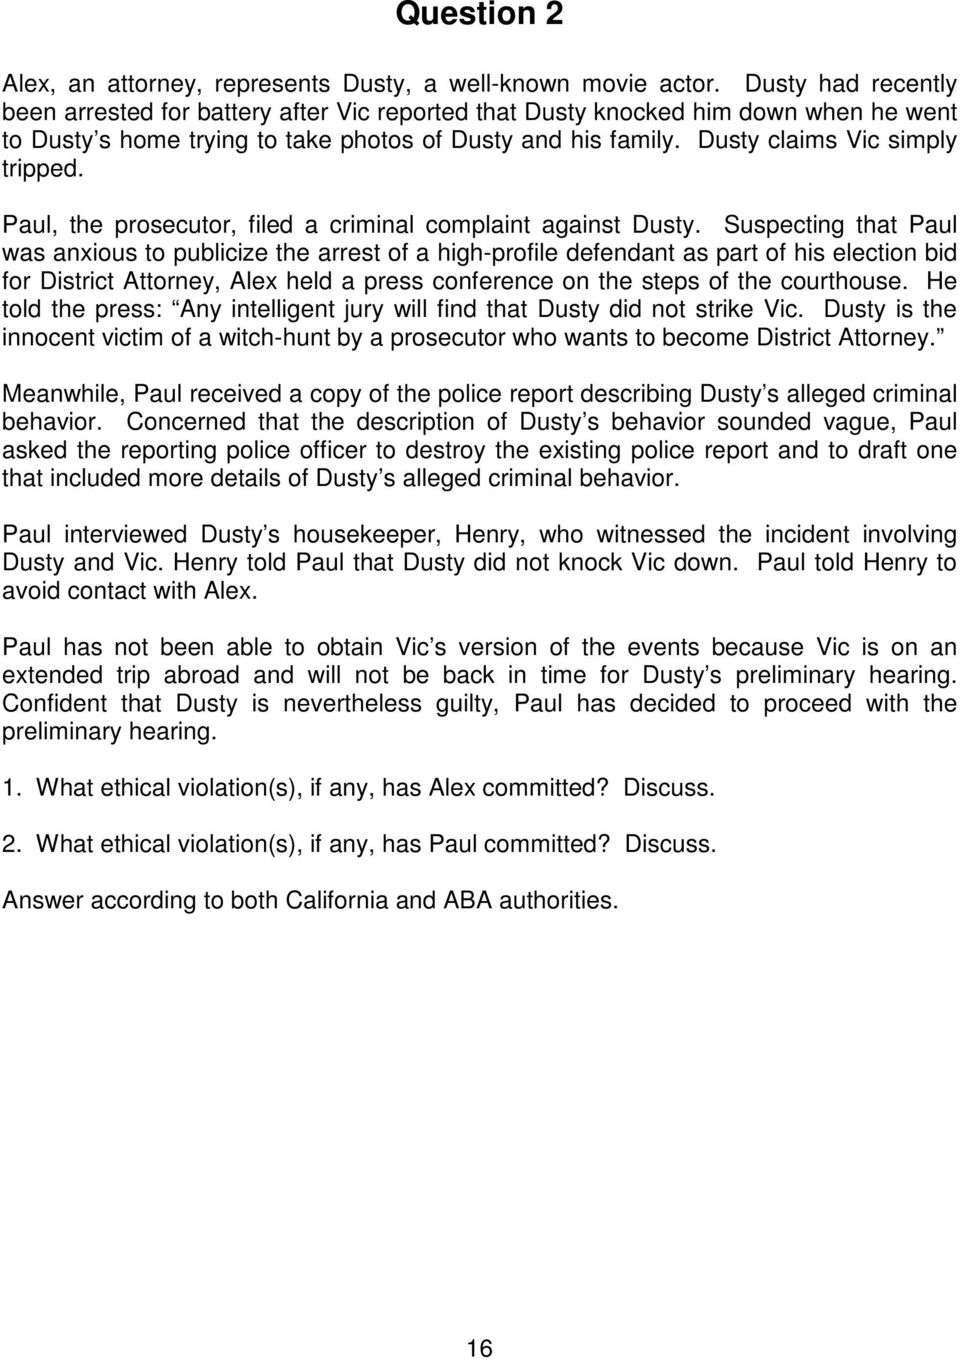 Paul, the prosecutor, filed a criminal complaint against Dusty.